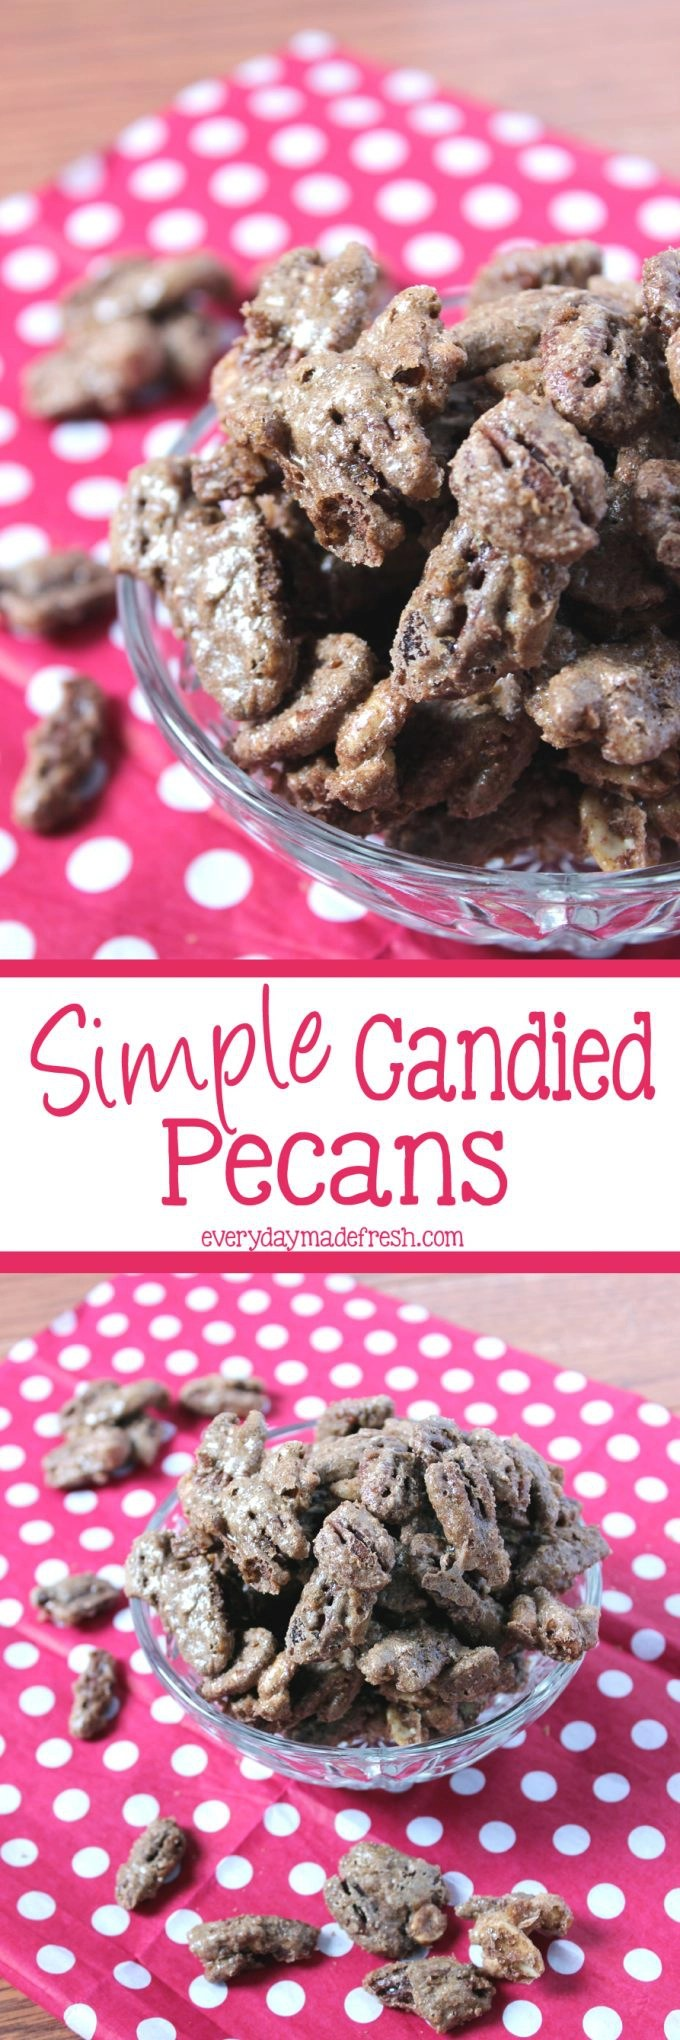 You won't believe how simple these Simple Candied Pecans are to make, using only 5 ingredients! | EverydayMadeFresh.com